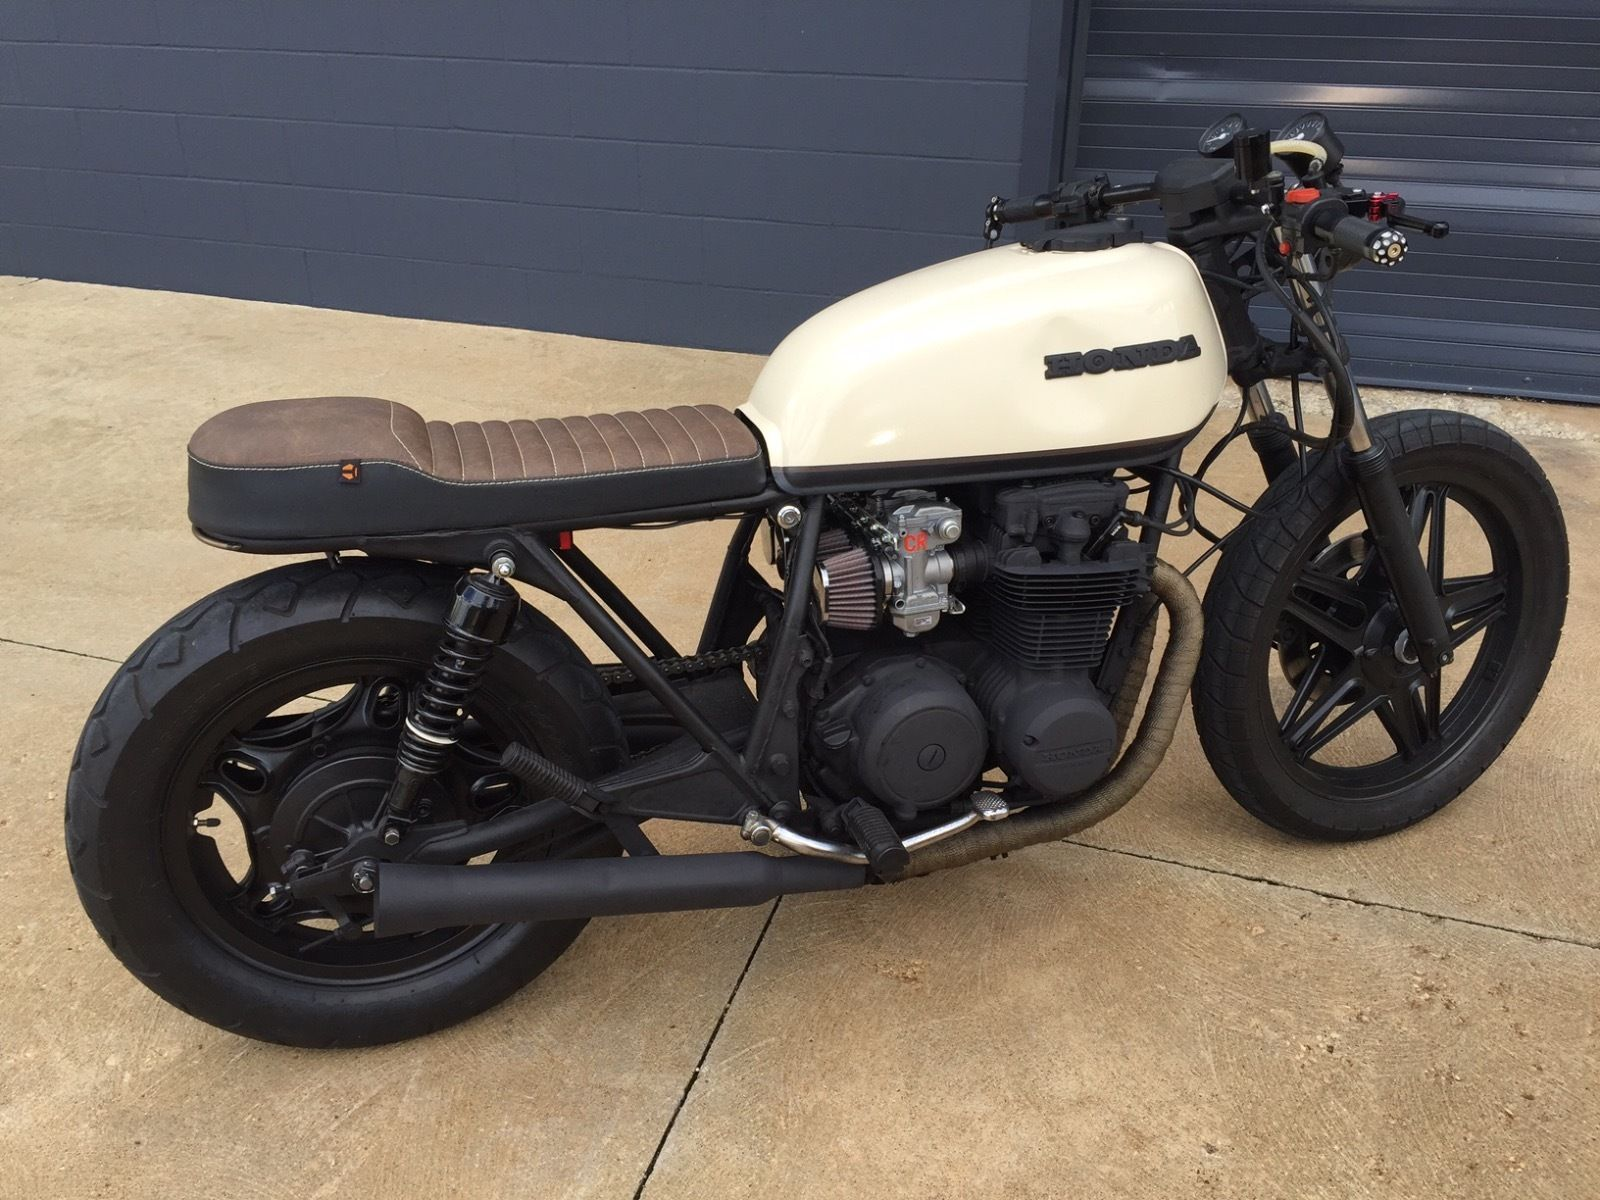 The Curated Moto Marketplace Rocker Co Cafe Racer Bikes Cafe Racer Honda Cafe Racer Motorcycle [ 1200 x 1600 Pixel ]